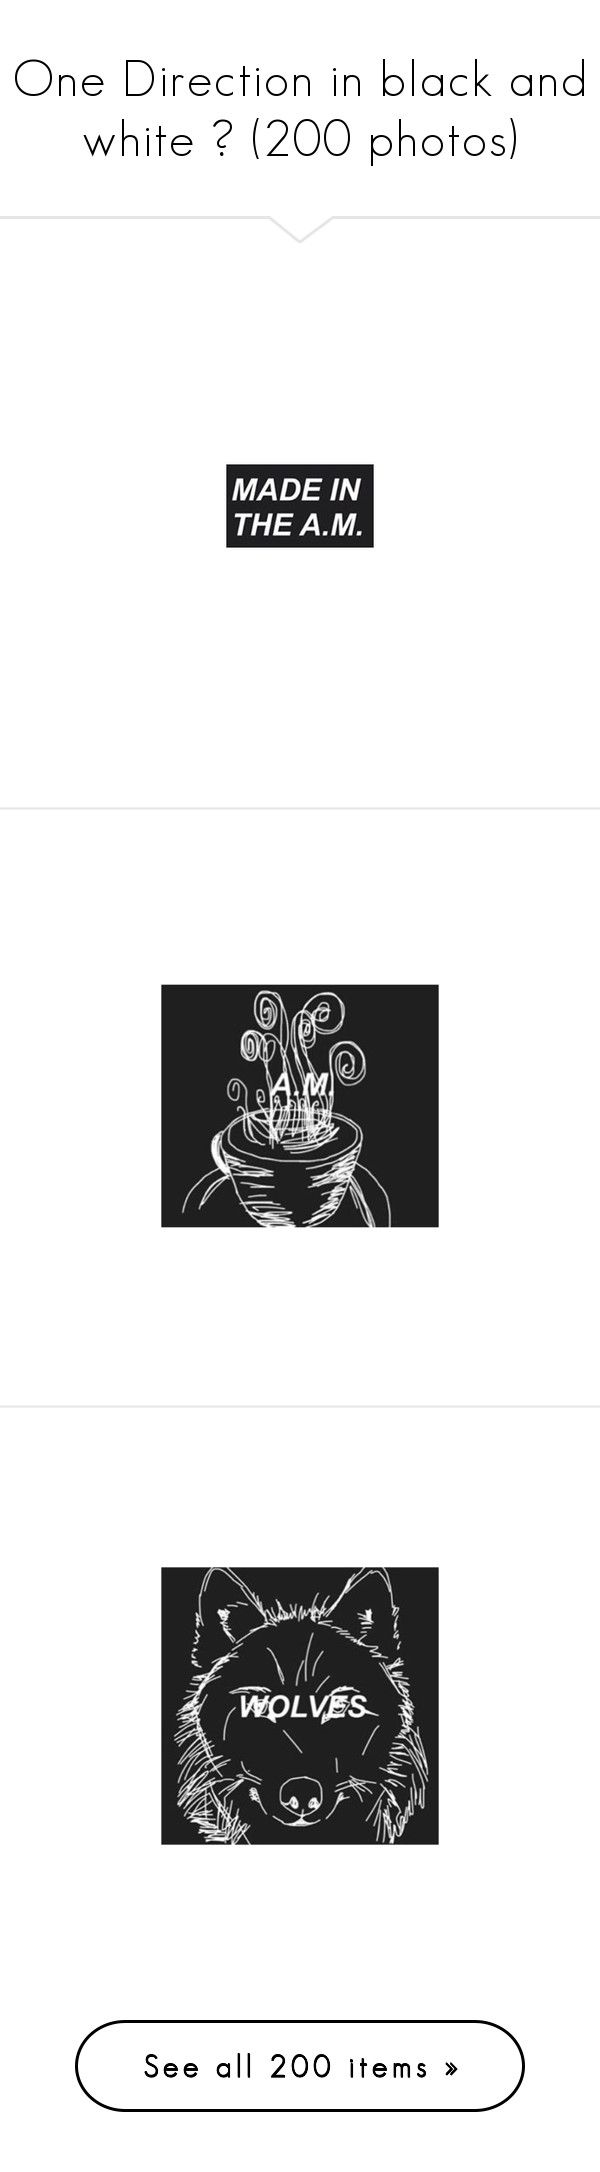 """""""One Direction in black and white ☯ (200 photos)"""" by get-weird ❤ liked on Polyvore featuring harry, & square pictures, one direction, - harry, harry styles, zayn malik, home, home decor, black and white home decor and black white home decor"""